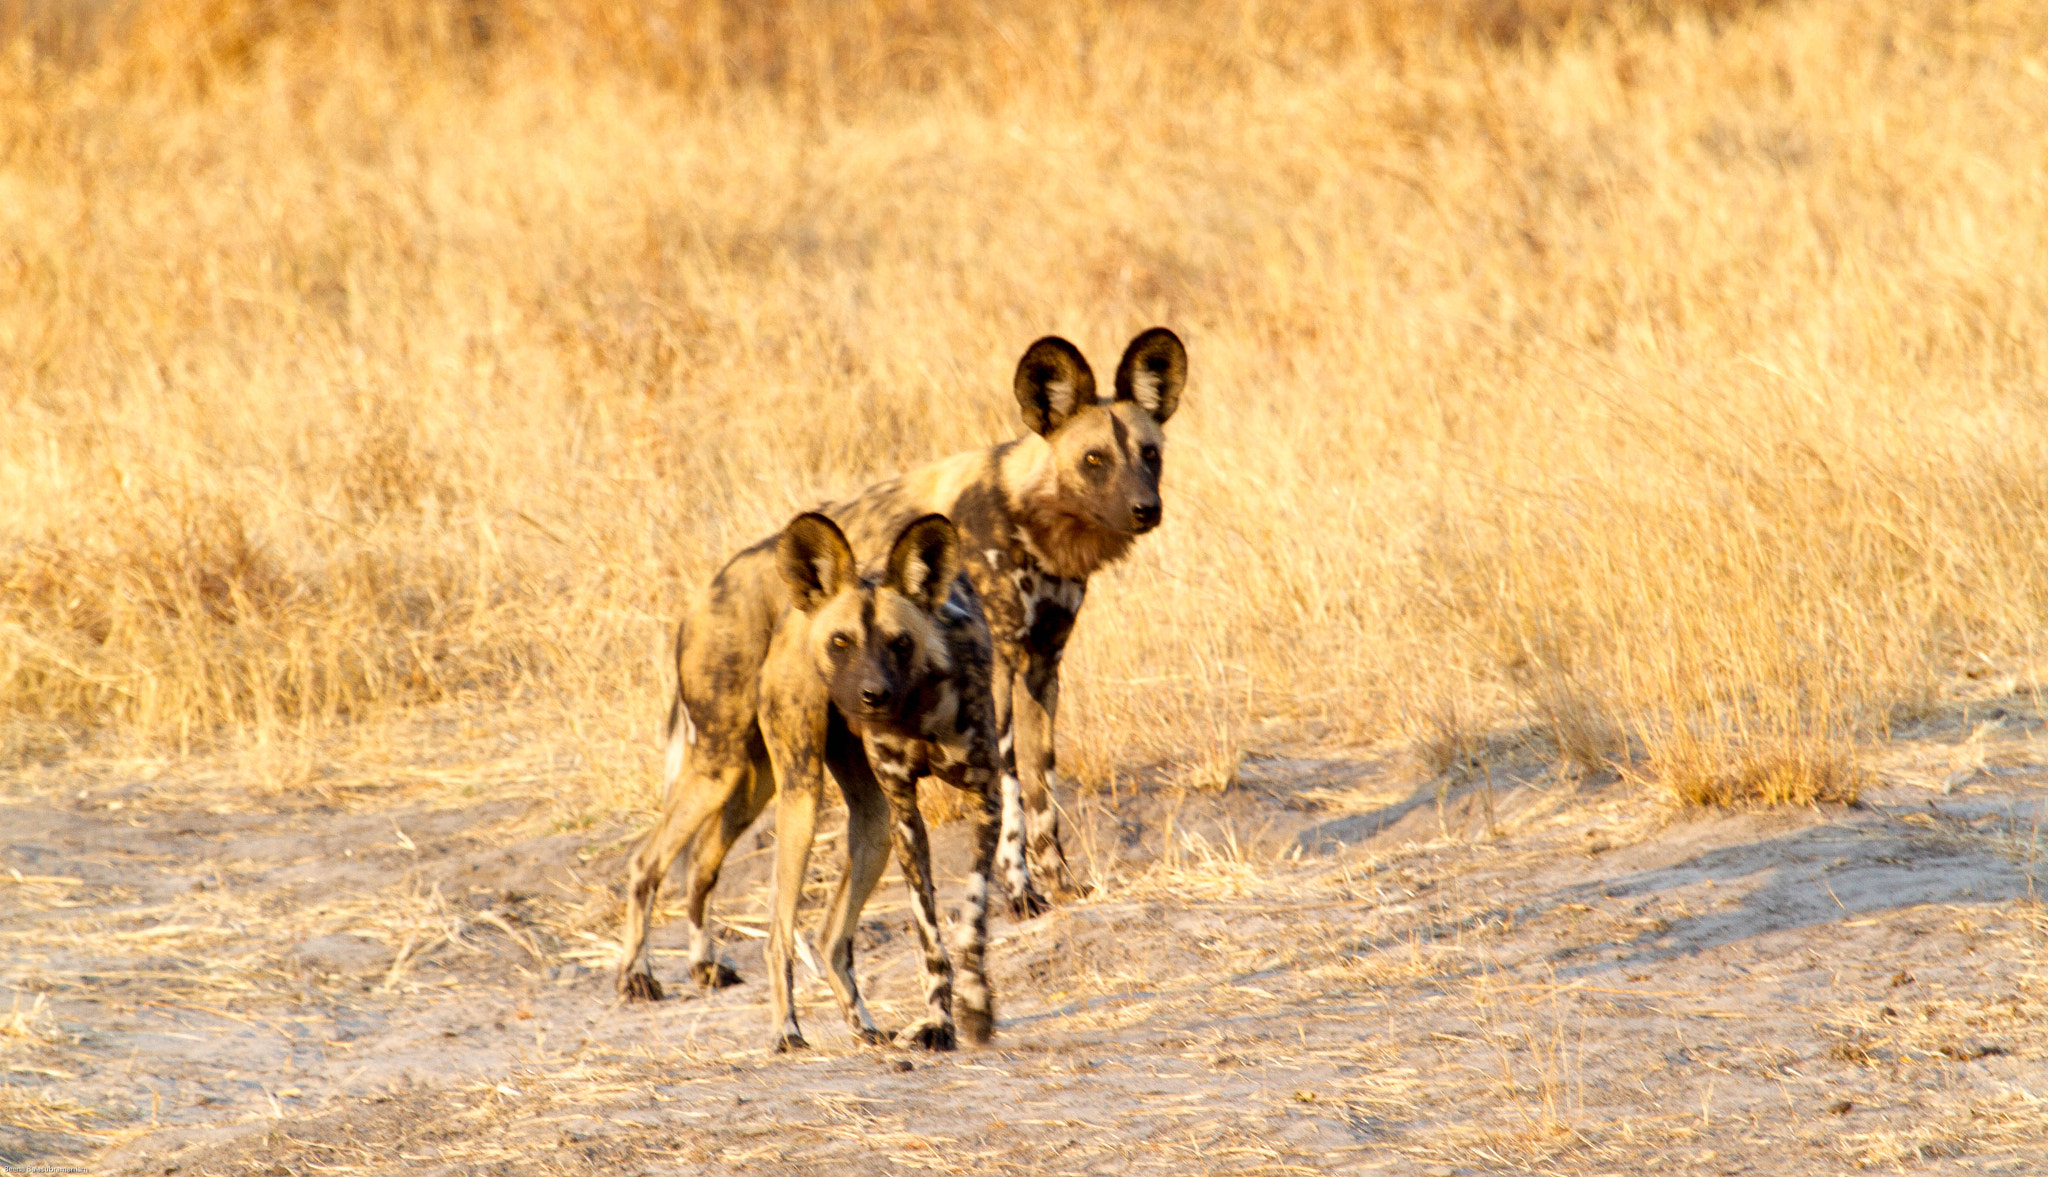 Photograph Wild Dogs by Beena Balasubramaniam on 500px